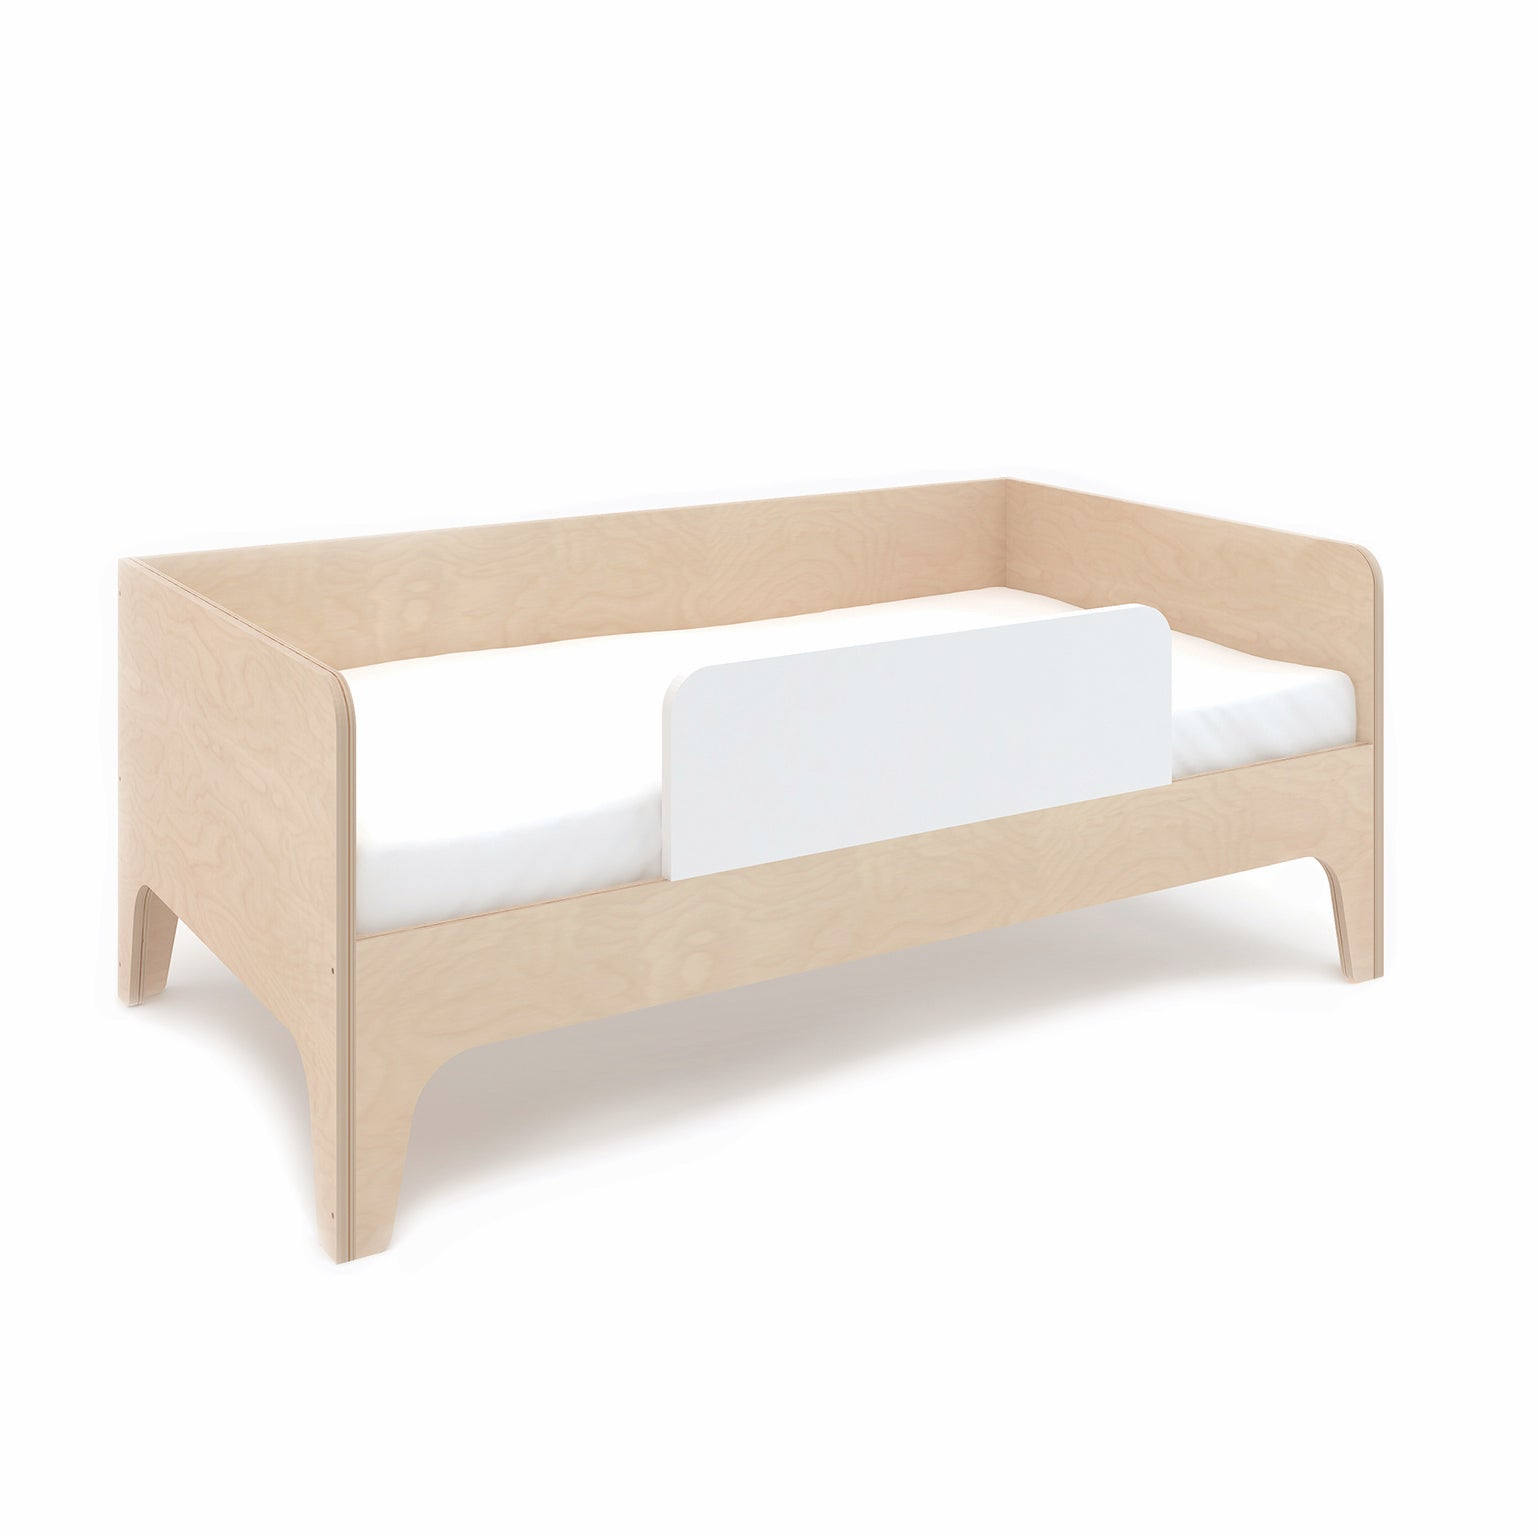 oeuf perch bunk bed assembly instructions